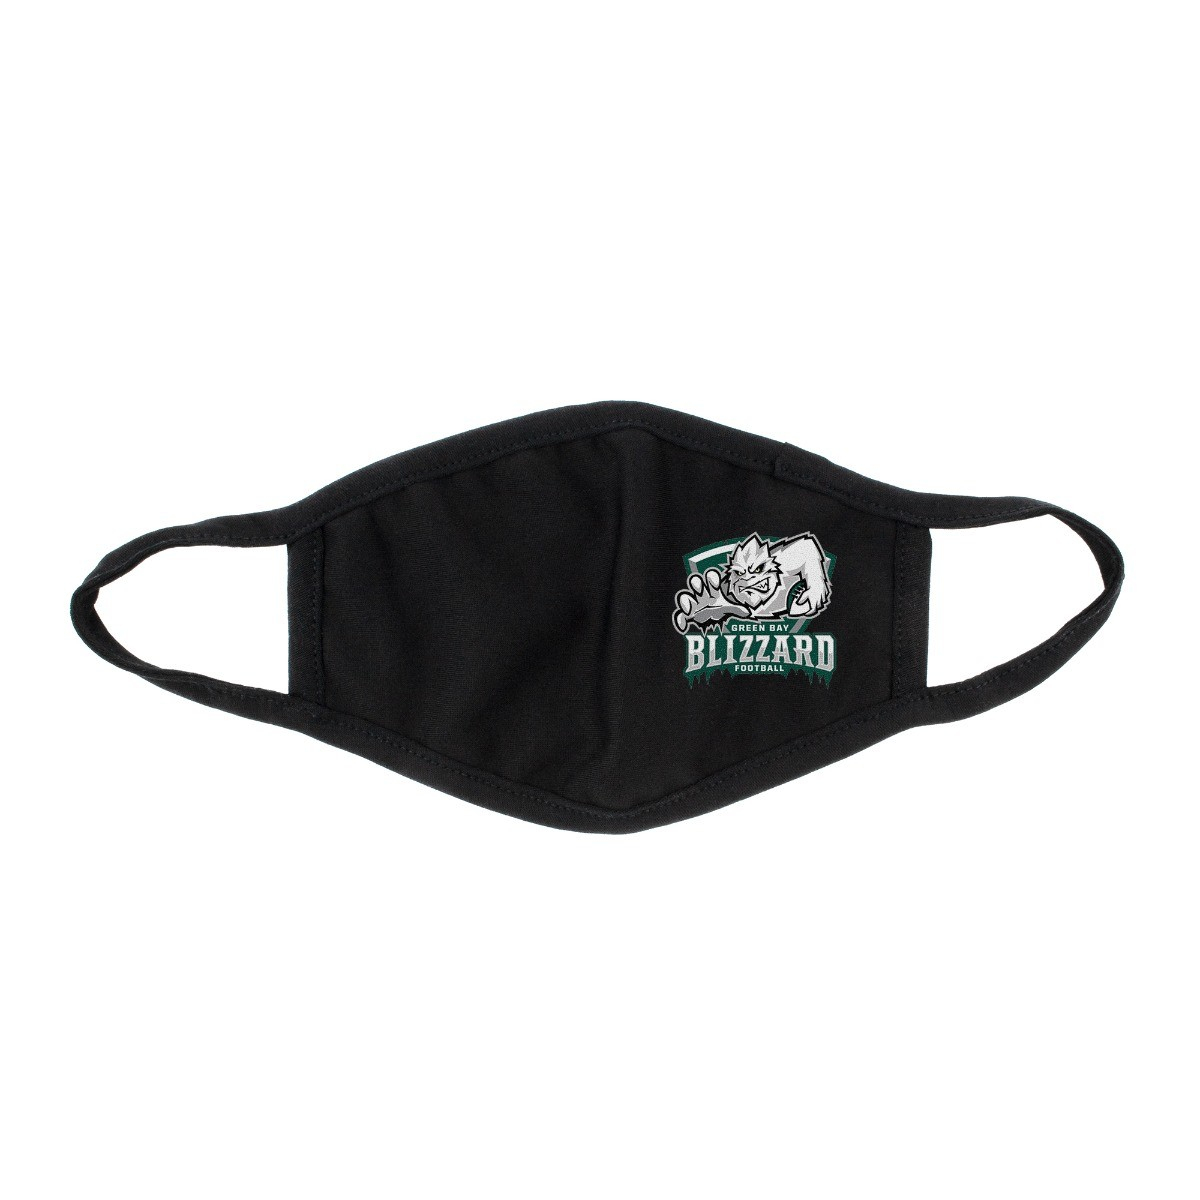 Stay Safe 2 Ply Cotton Non-Medical Mask